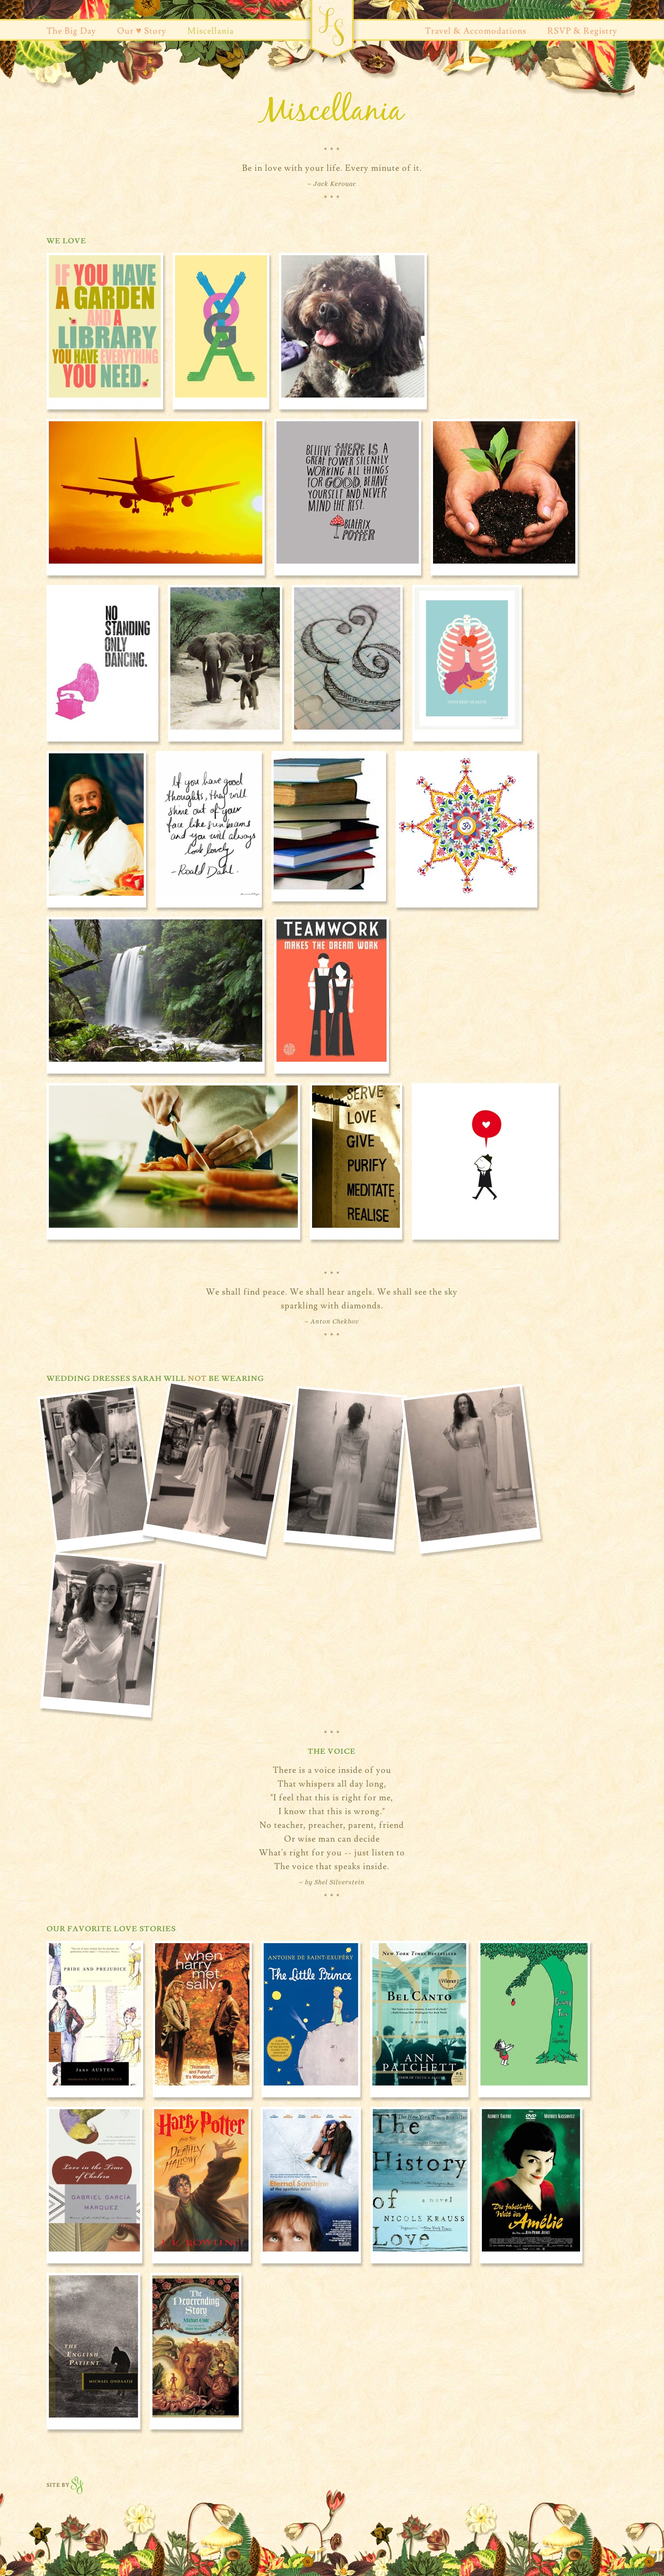 Wedding Website Misc Page